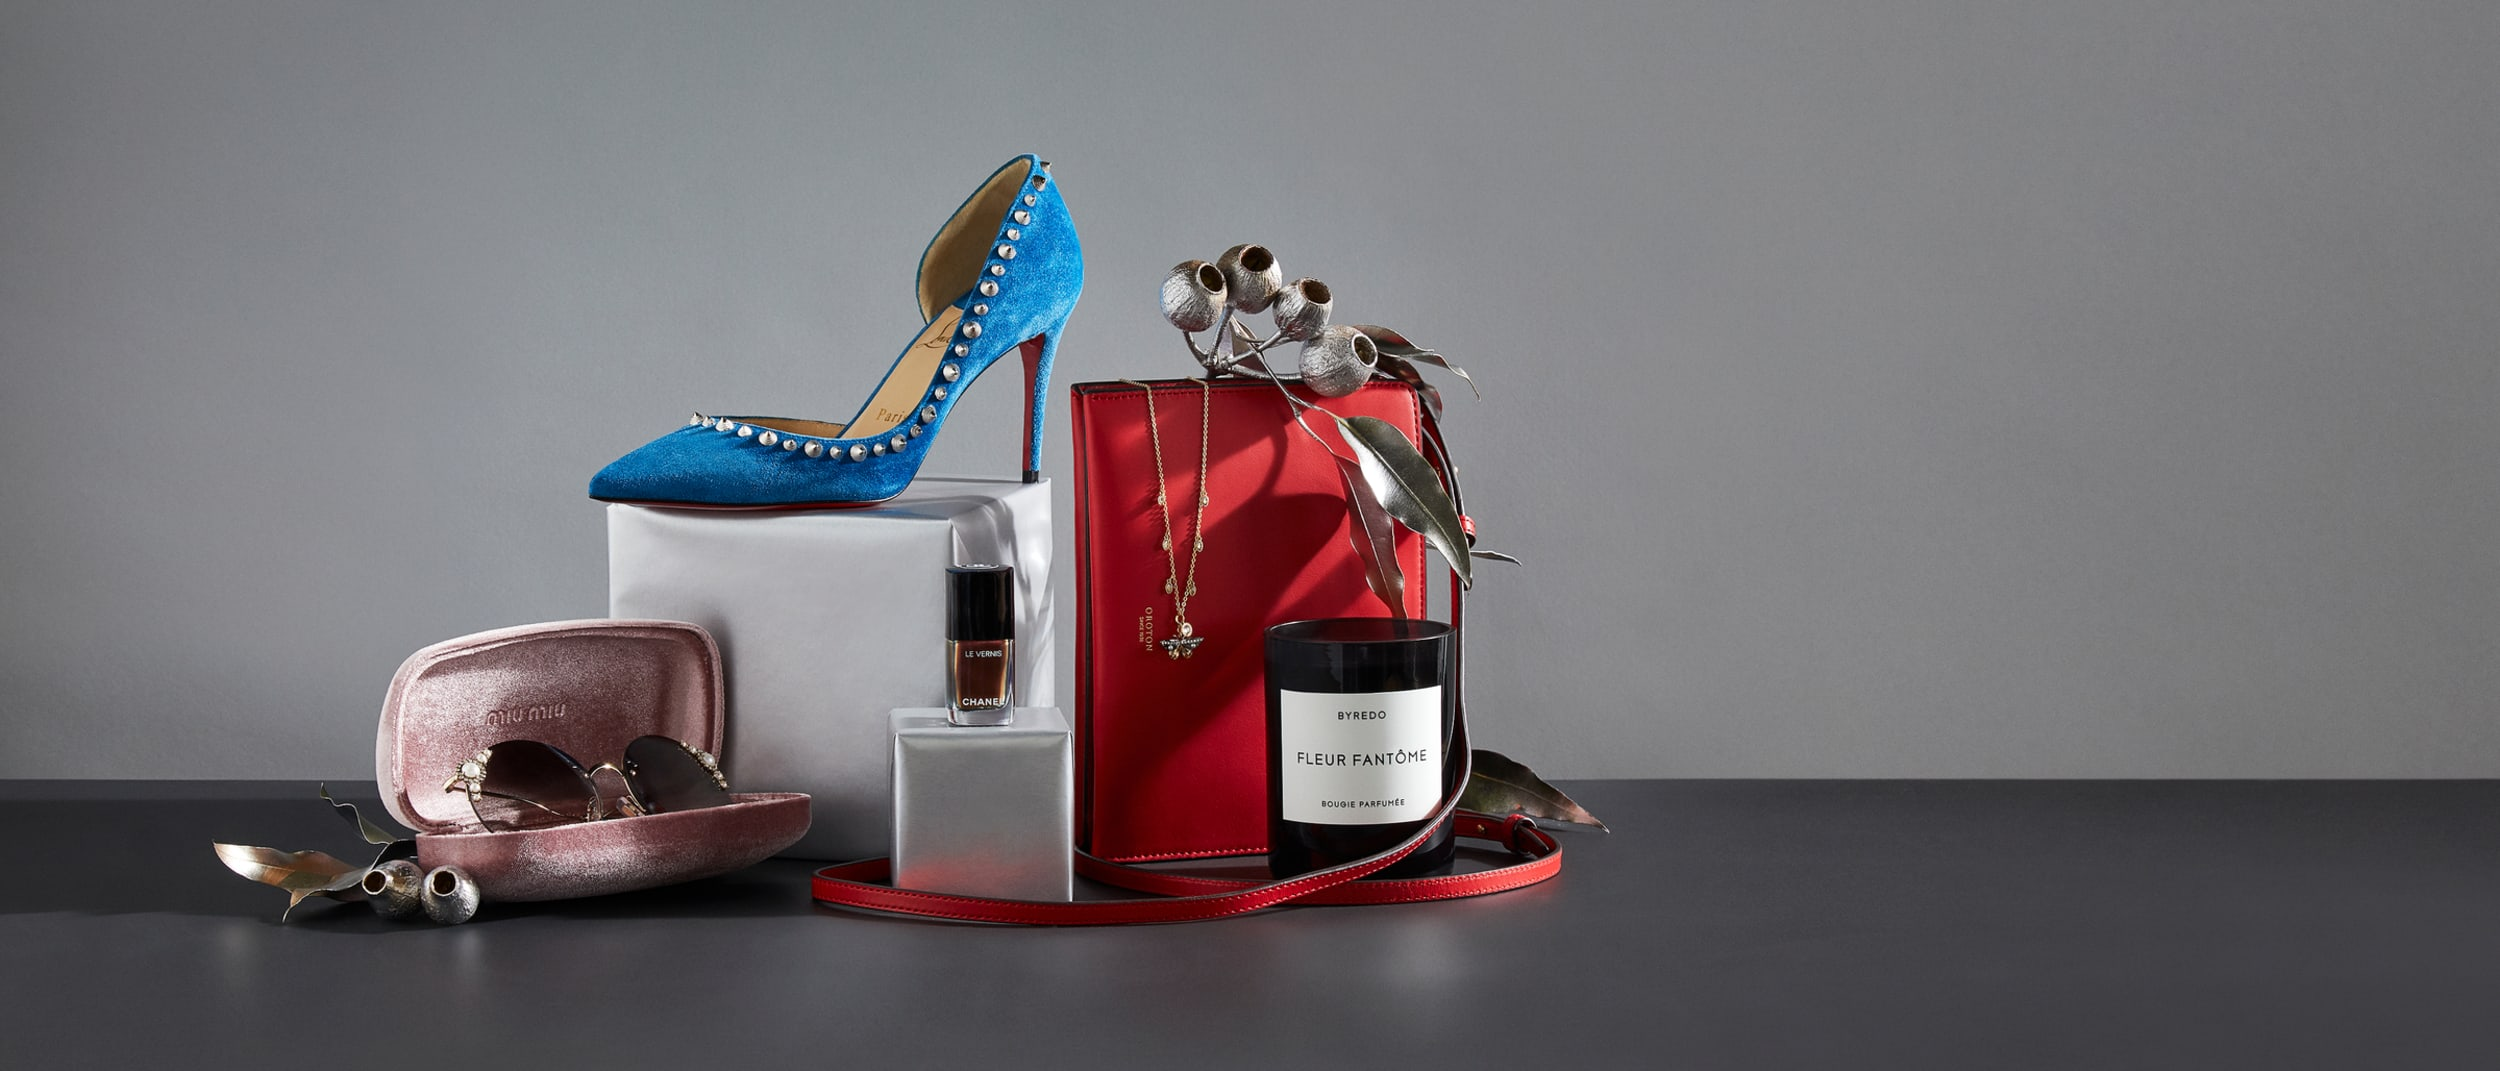 Luxurious Christmas gift ideas for her